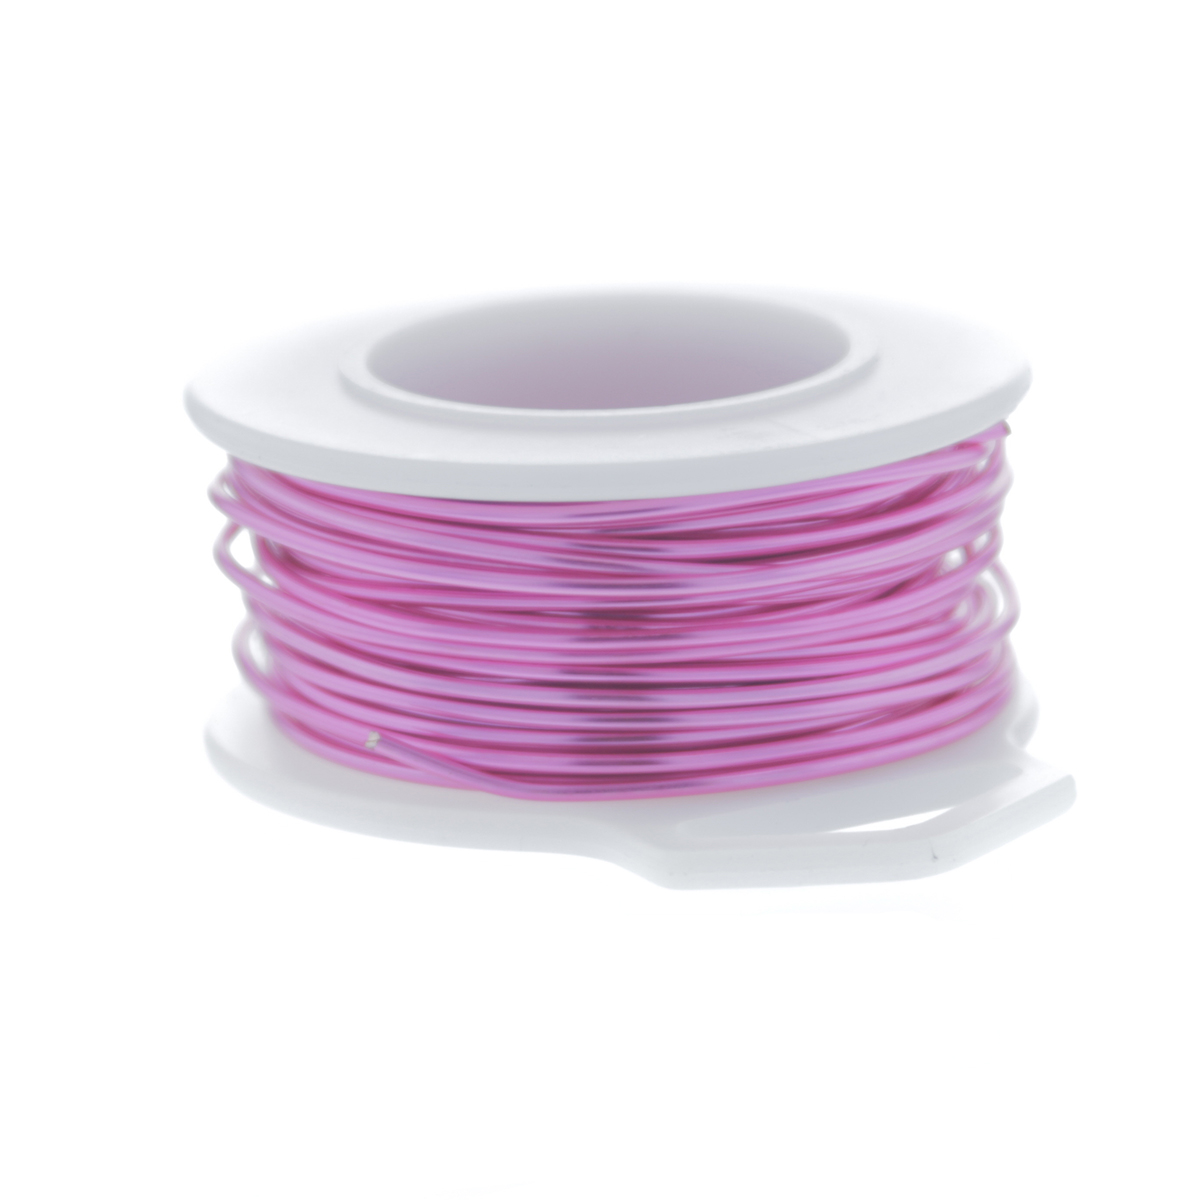 22 gauge round silver plated hot pink copper craft wire for 24 gauge craft wire